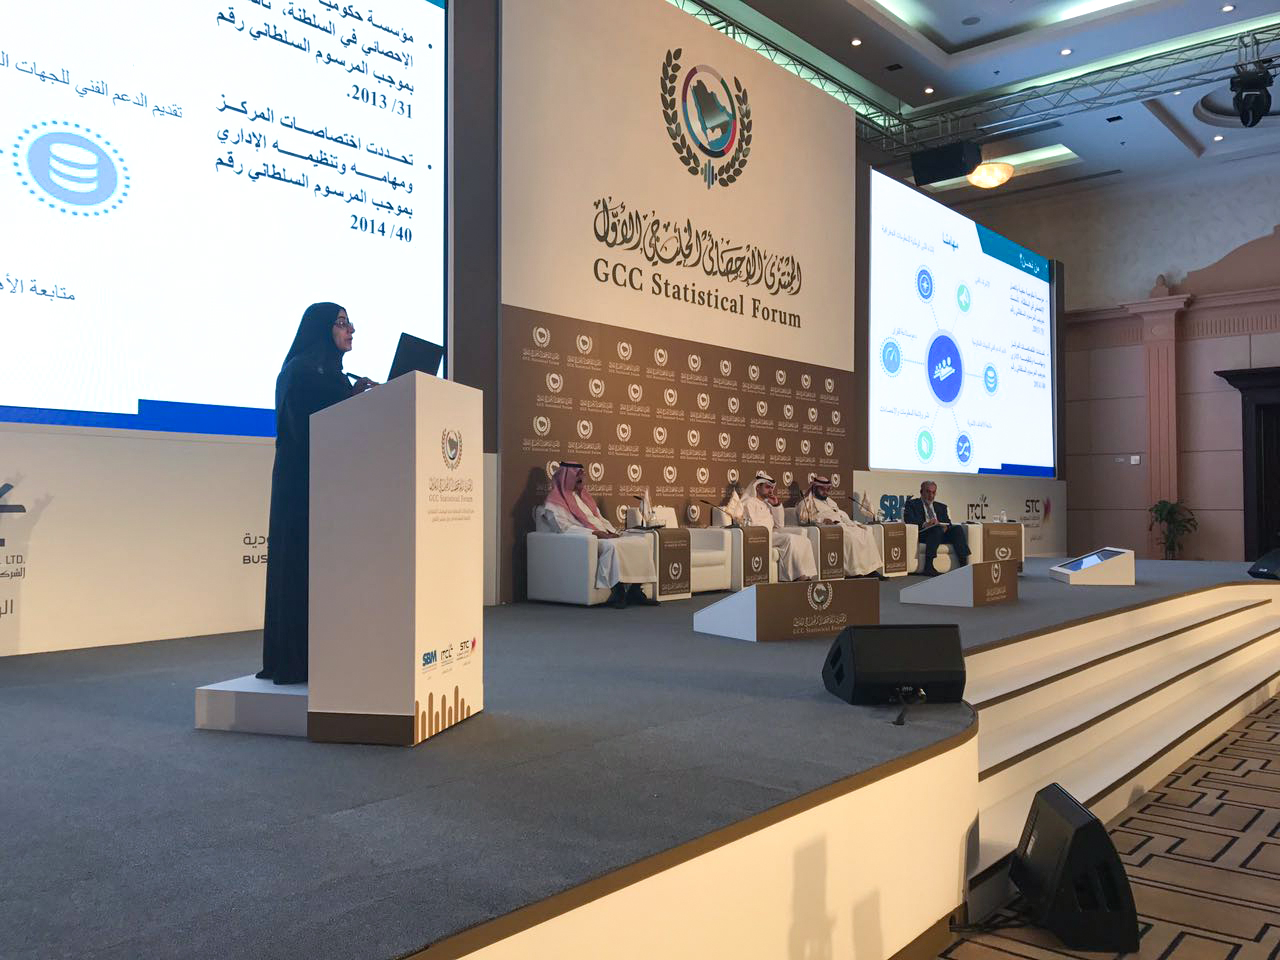 Oman presents paper on 'data to information'  at first Gulf Statistical Forum in Riyadh